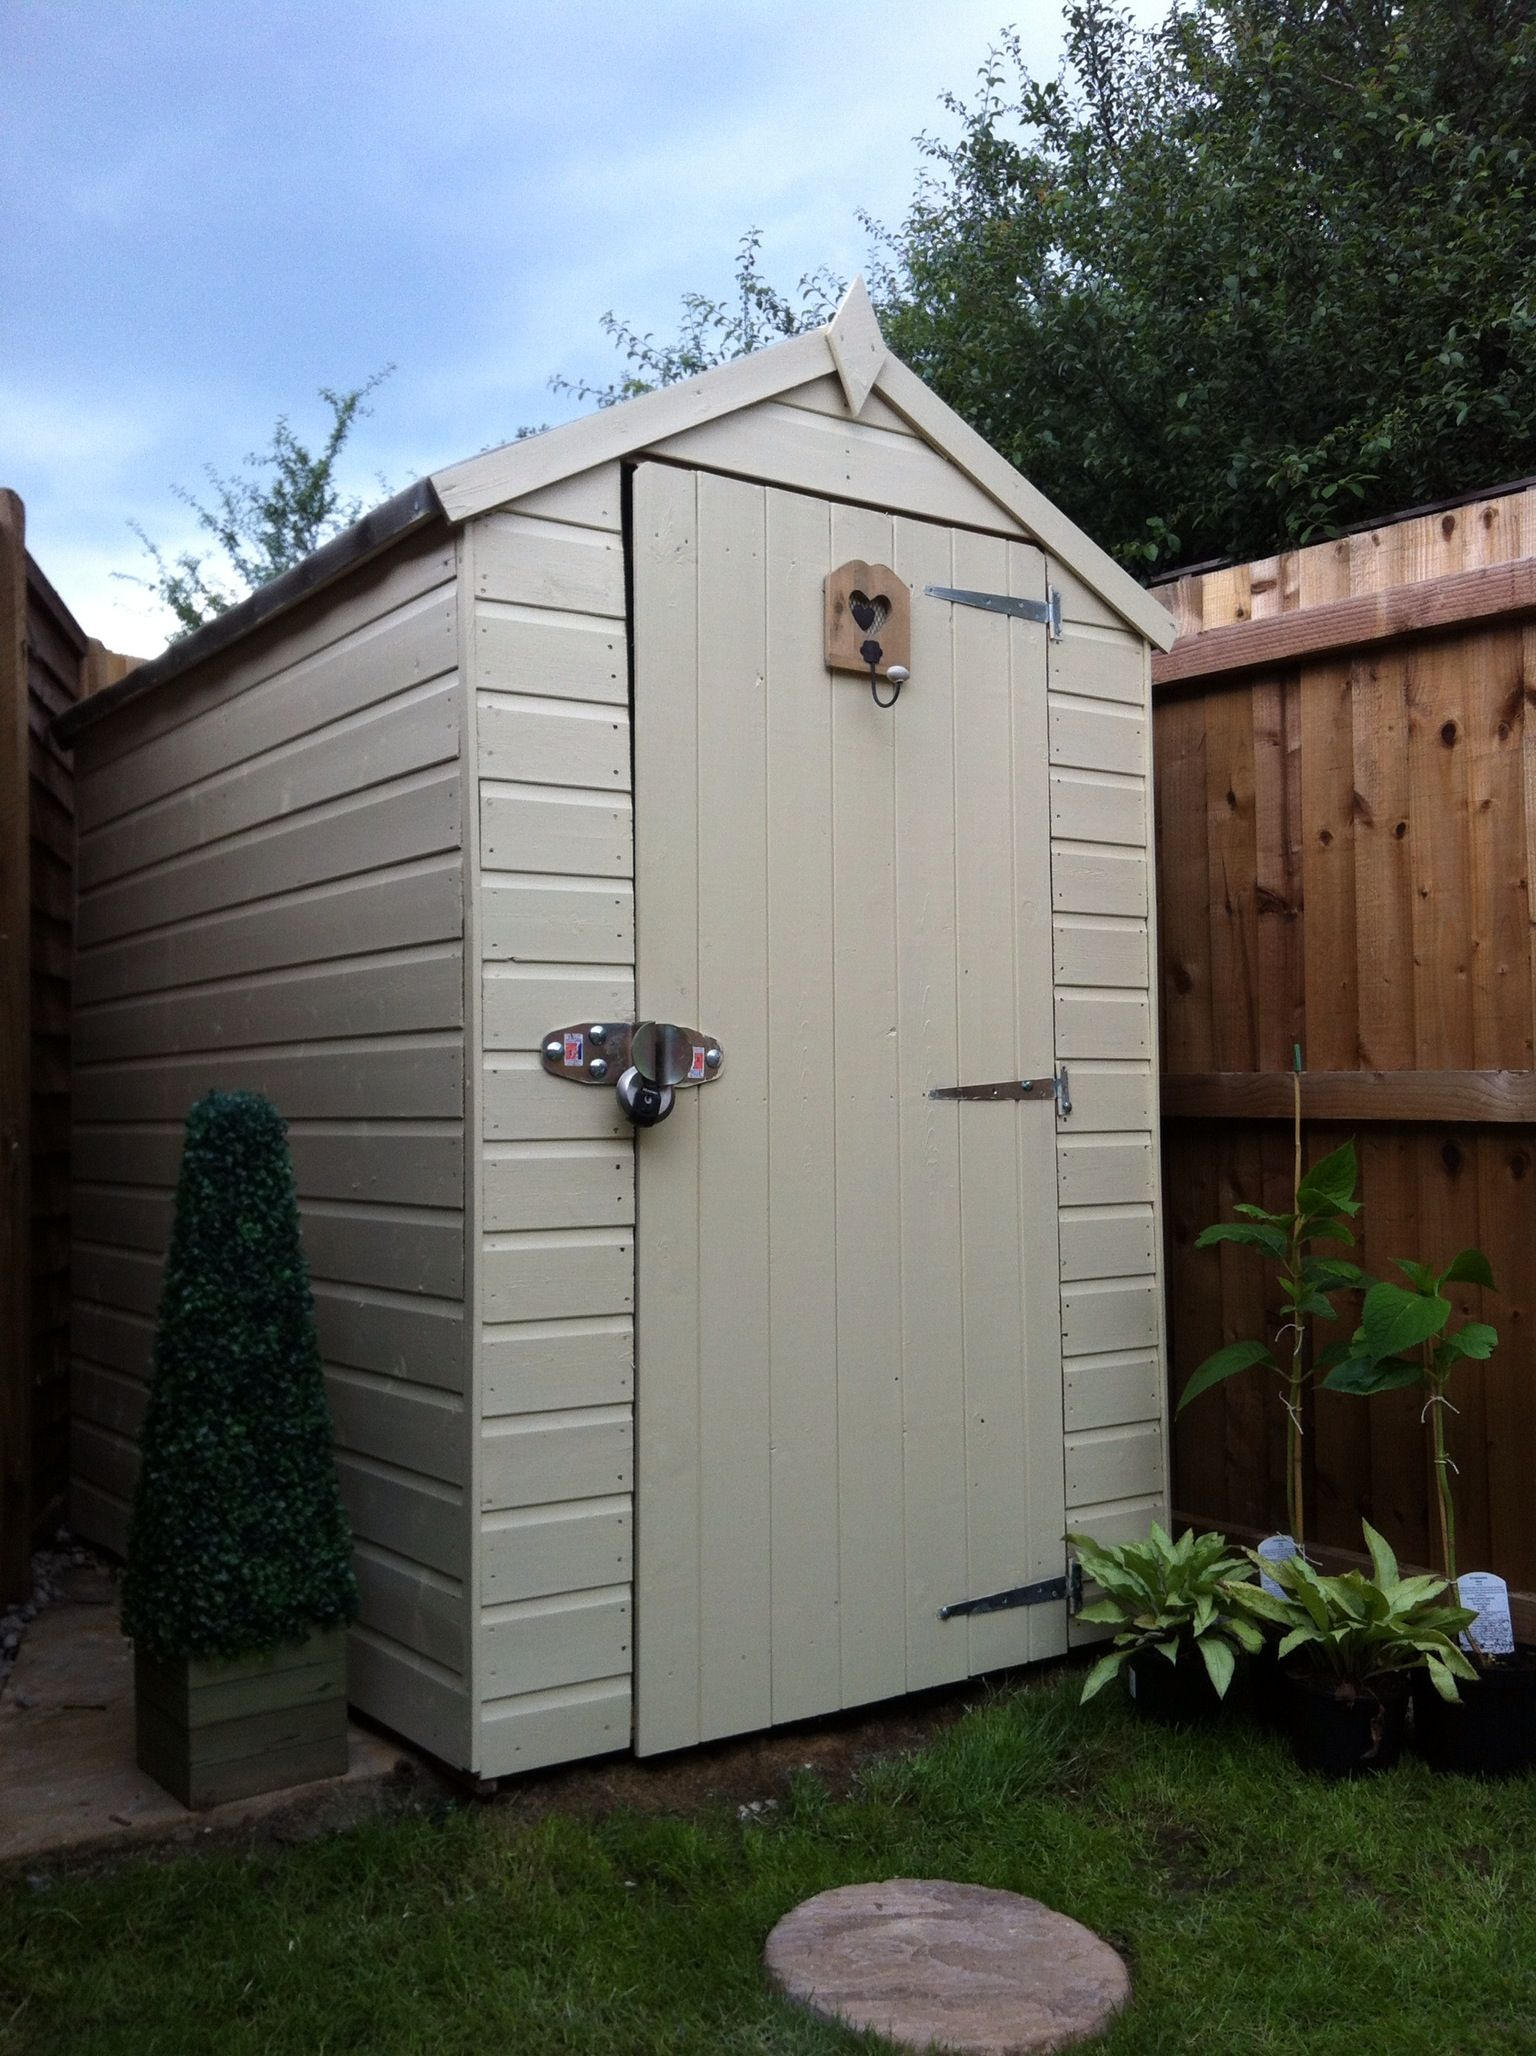 Ideas for painting your garden shed - Shed Makeover Complete Painted And Lovely I Used Cuprinol Garden Shades In Country